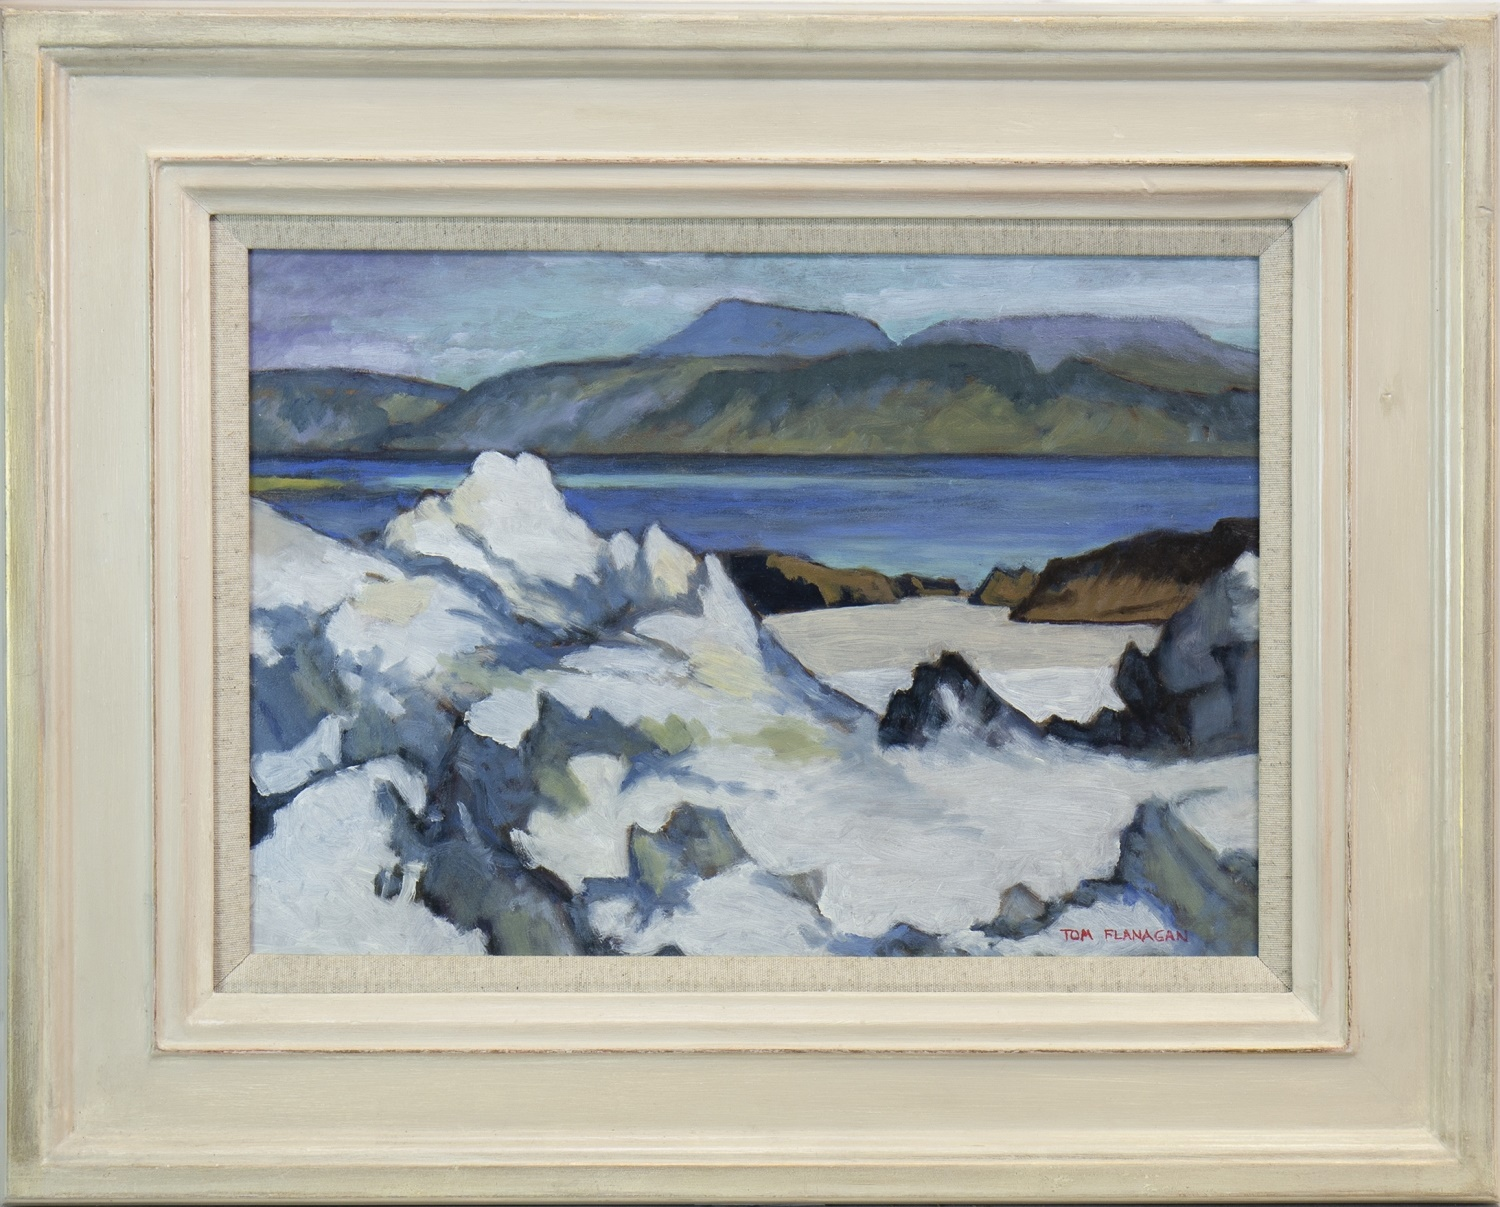 Lot 537 - WHITE SANDS, AN OIL BY TOM FLANAGAN